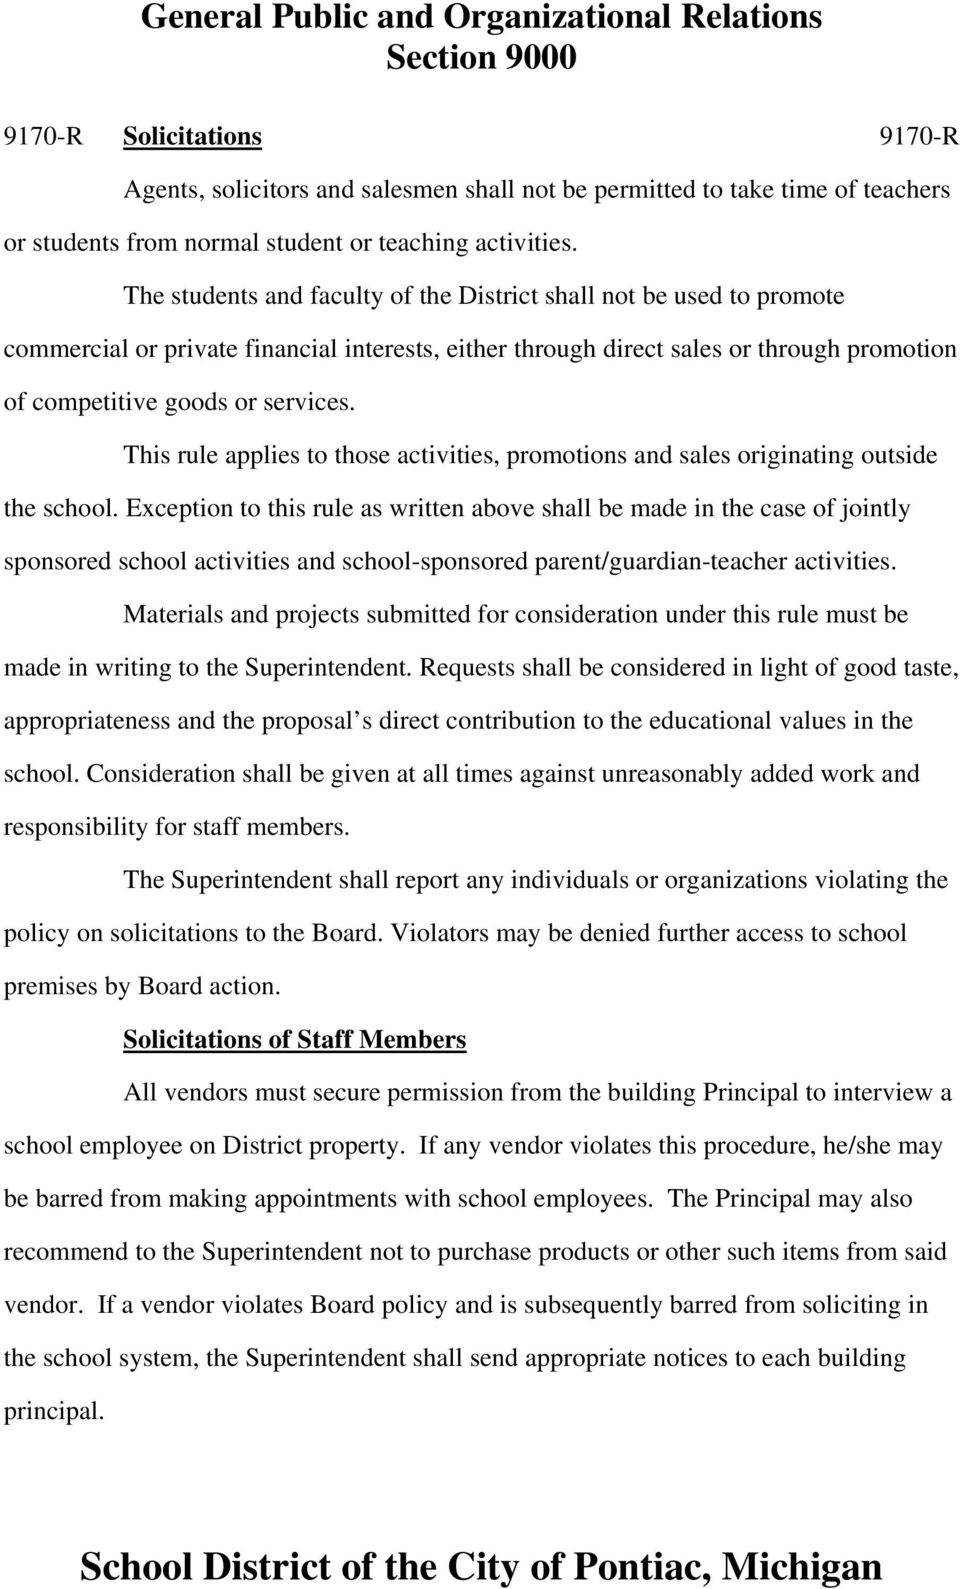 This rule applies to those activities, promotions and sales originating outside the school.